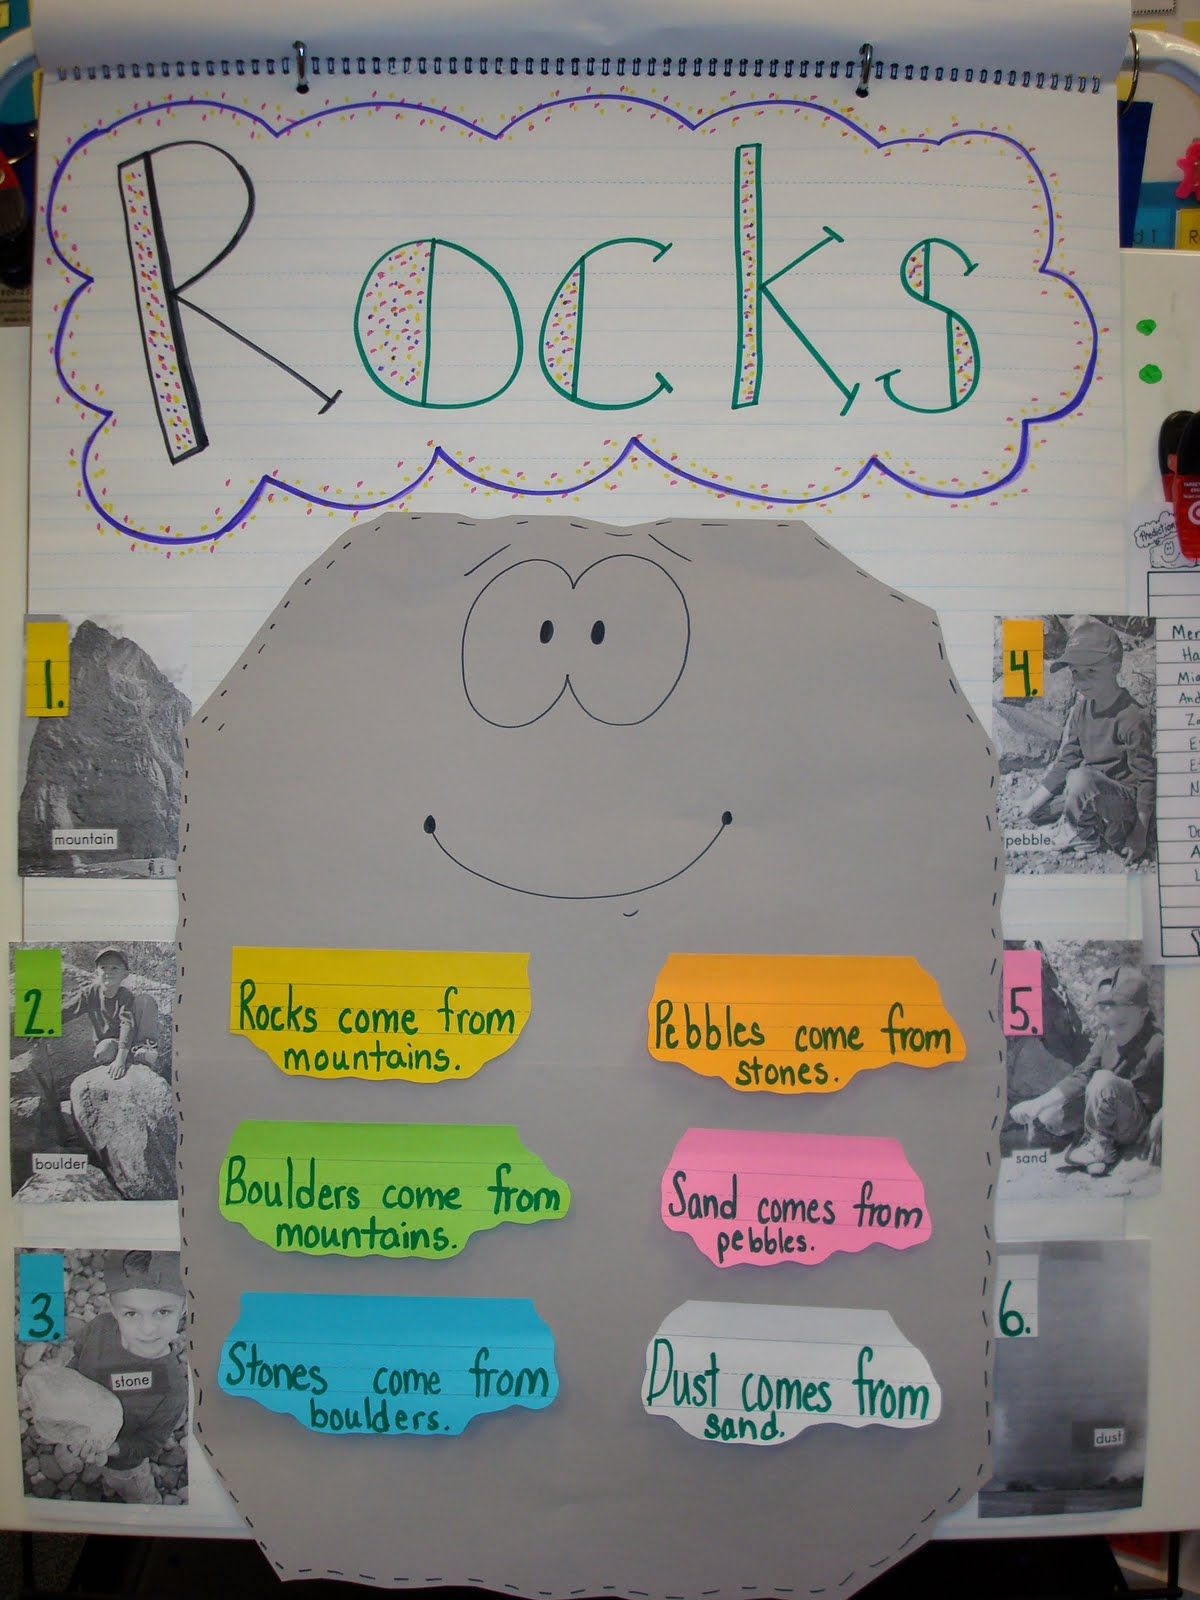 A Cute Way To Show The Different Types Of Rocks From